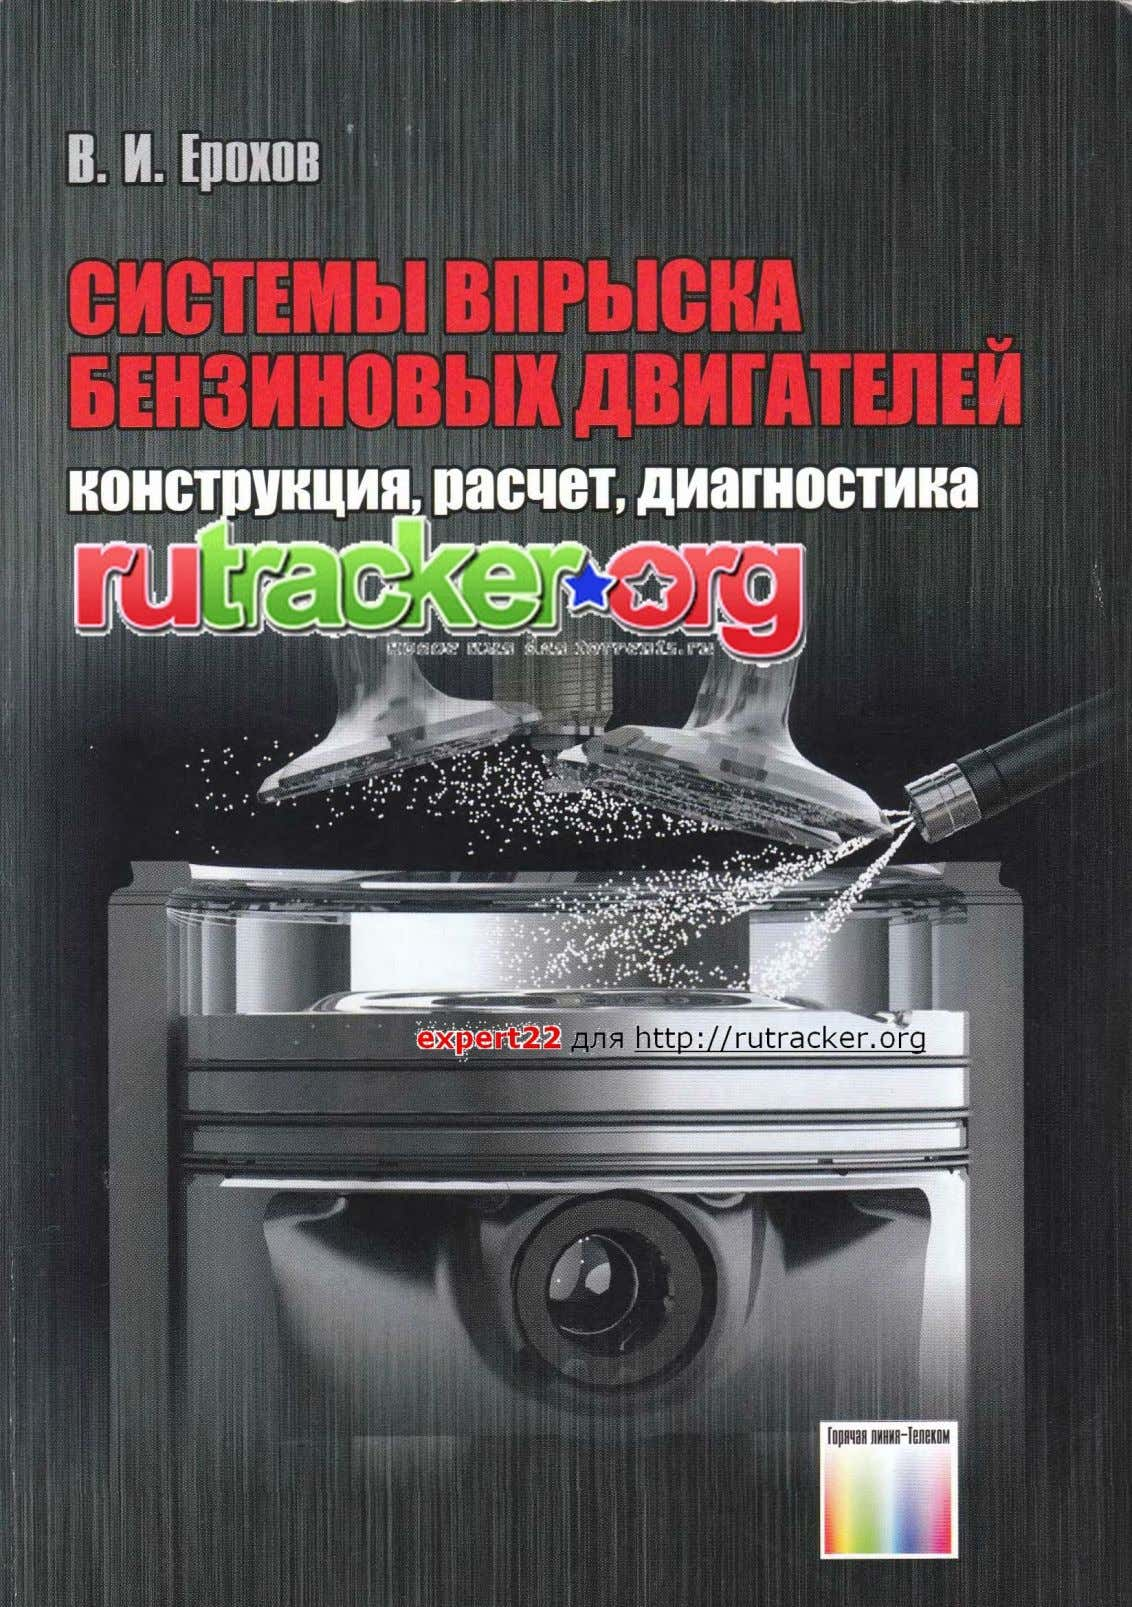 ШшМдл я http://rutracker.org